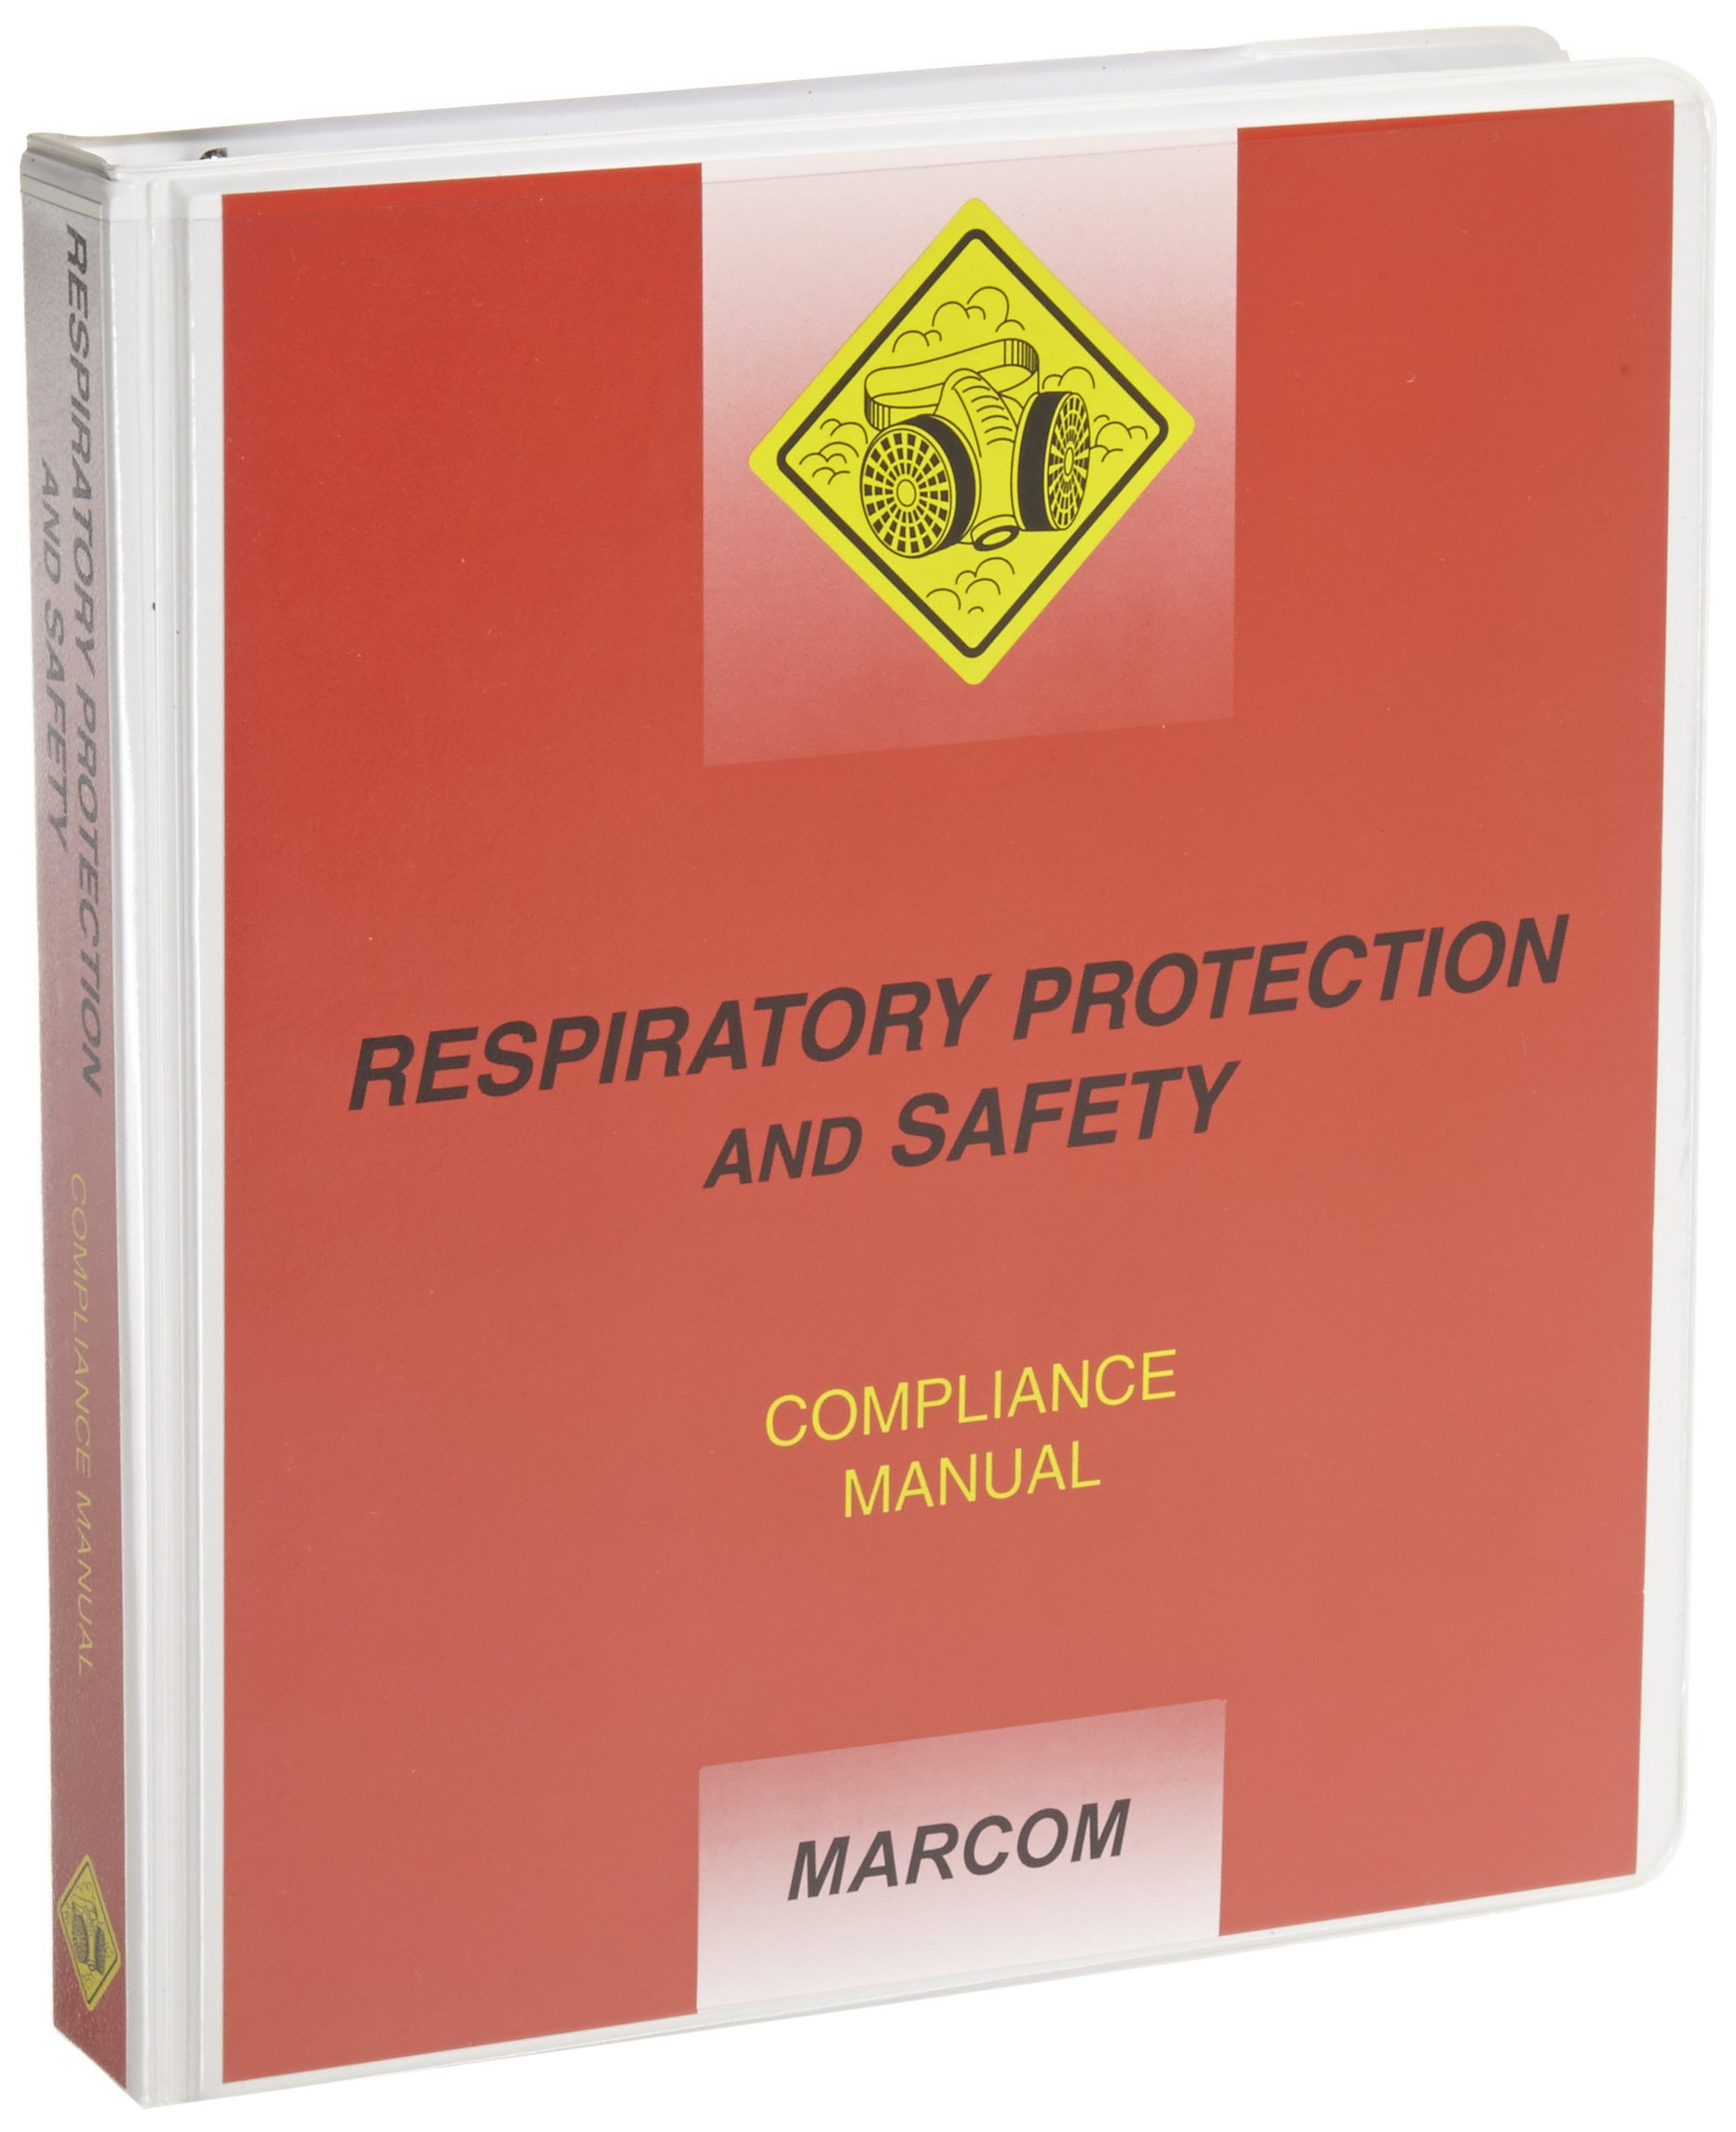 MARCOM Respiratory Protection and Safety Compliance Manual